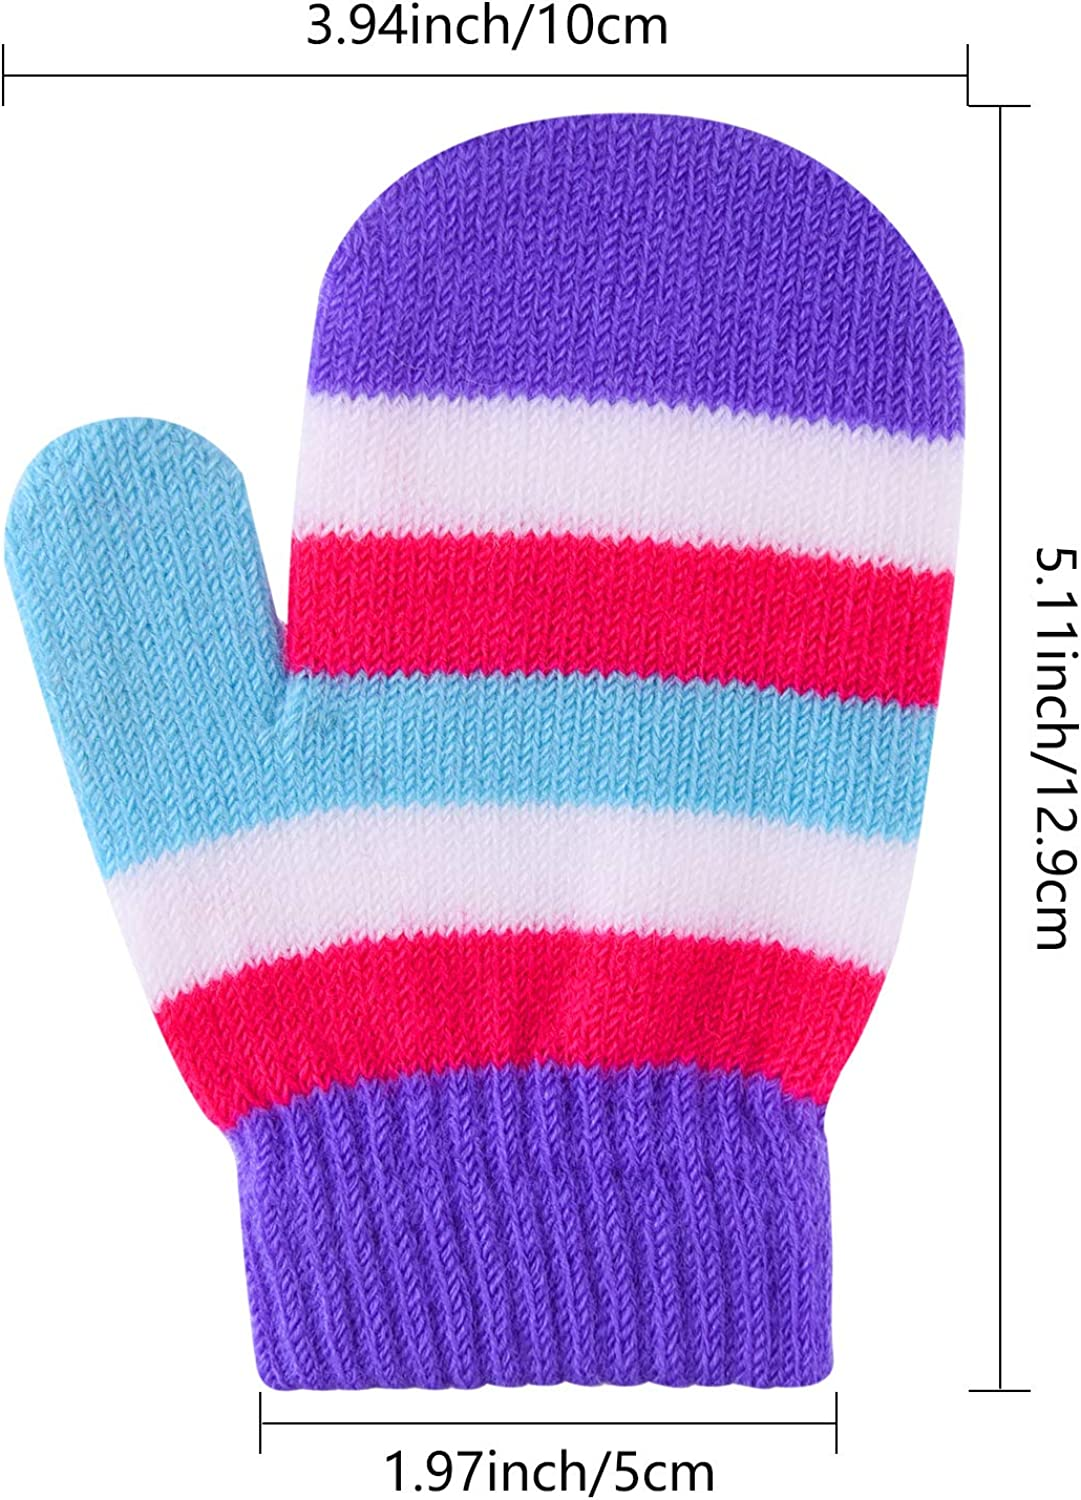 FEPITO 12 Pairs Toddler Magic Stretch Soft Knitted Mittens Baby Boys Girls Winter Gloves